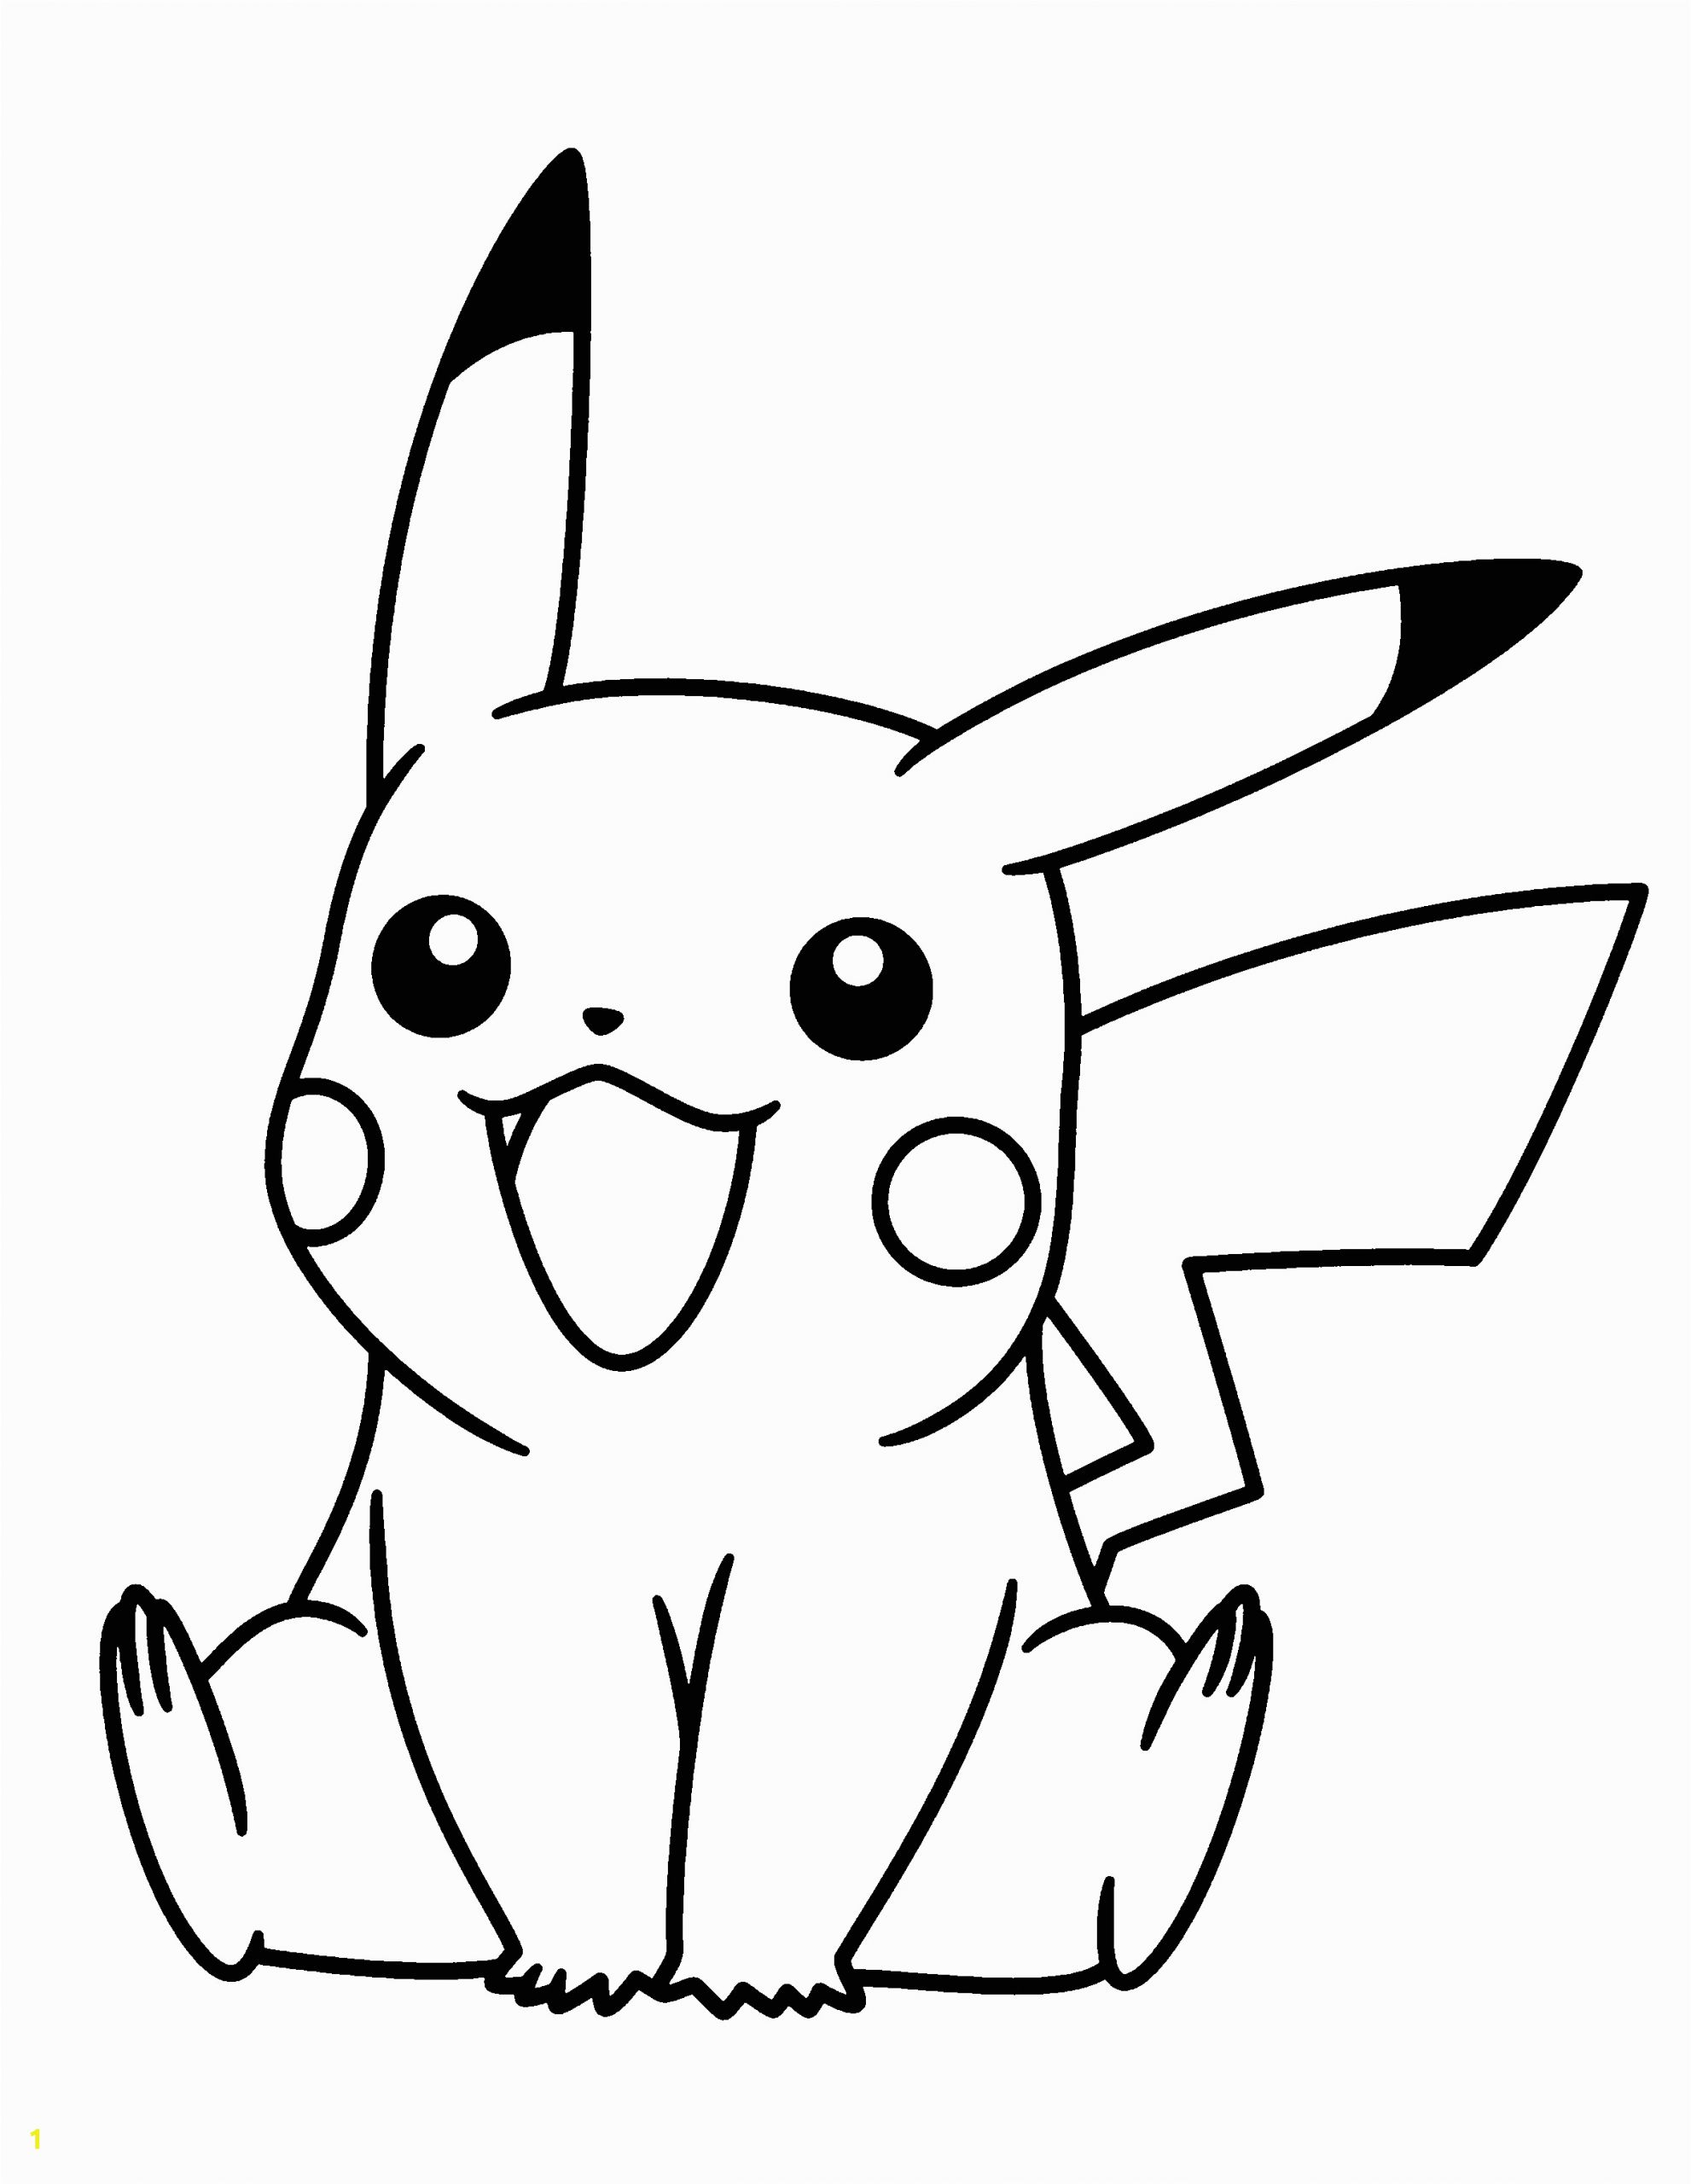 pikachu images for coloring printable pikachu coloring pages for kids cool2bkids coloring for pikachu images